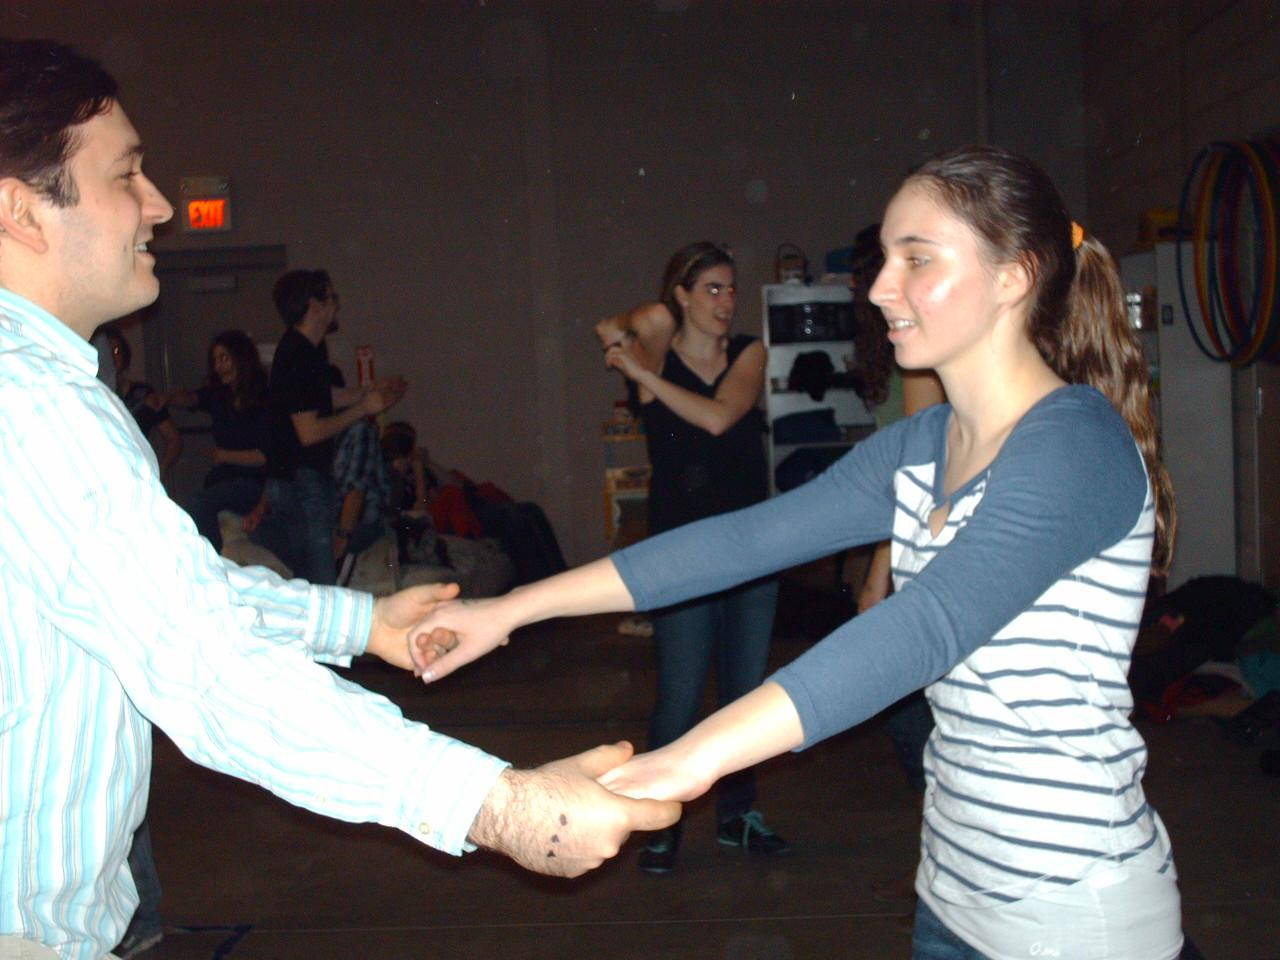 Junior Madeline Bresson enjoys learning new swing dance steps at the Farmington Swinginfusion location.